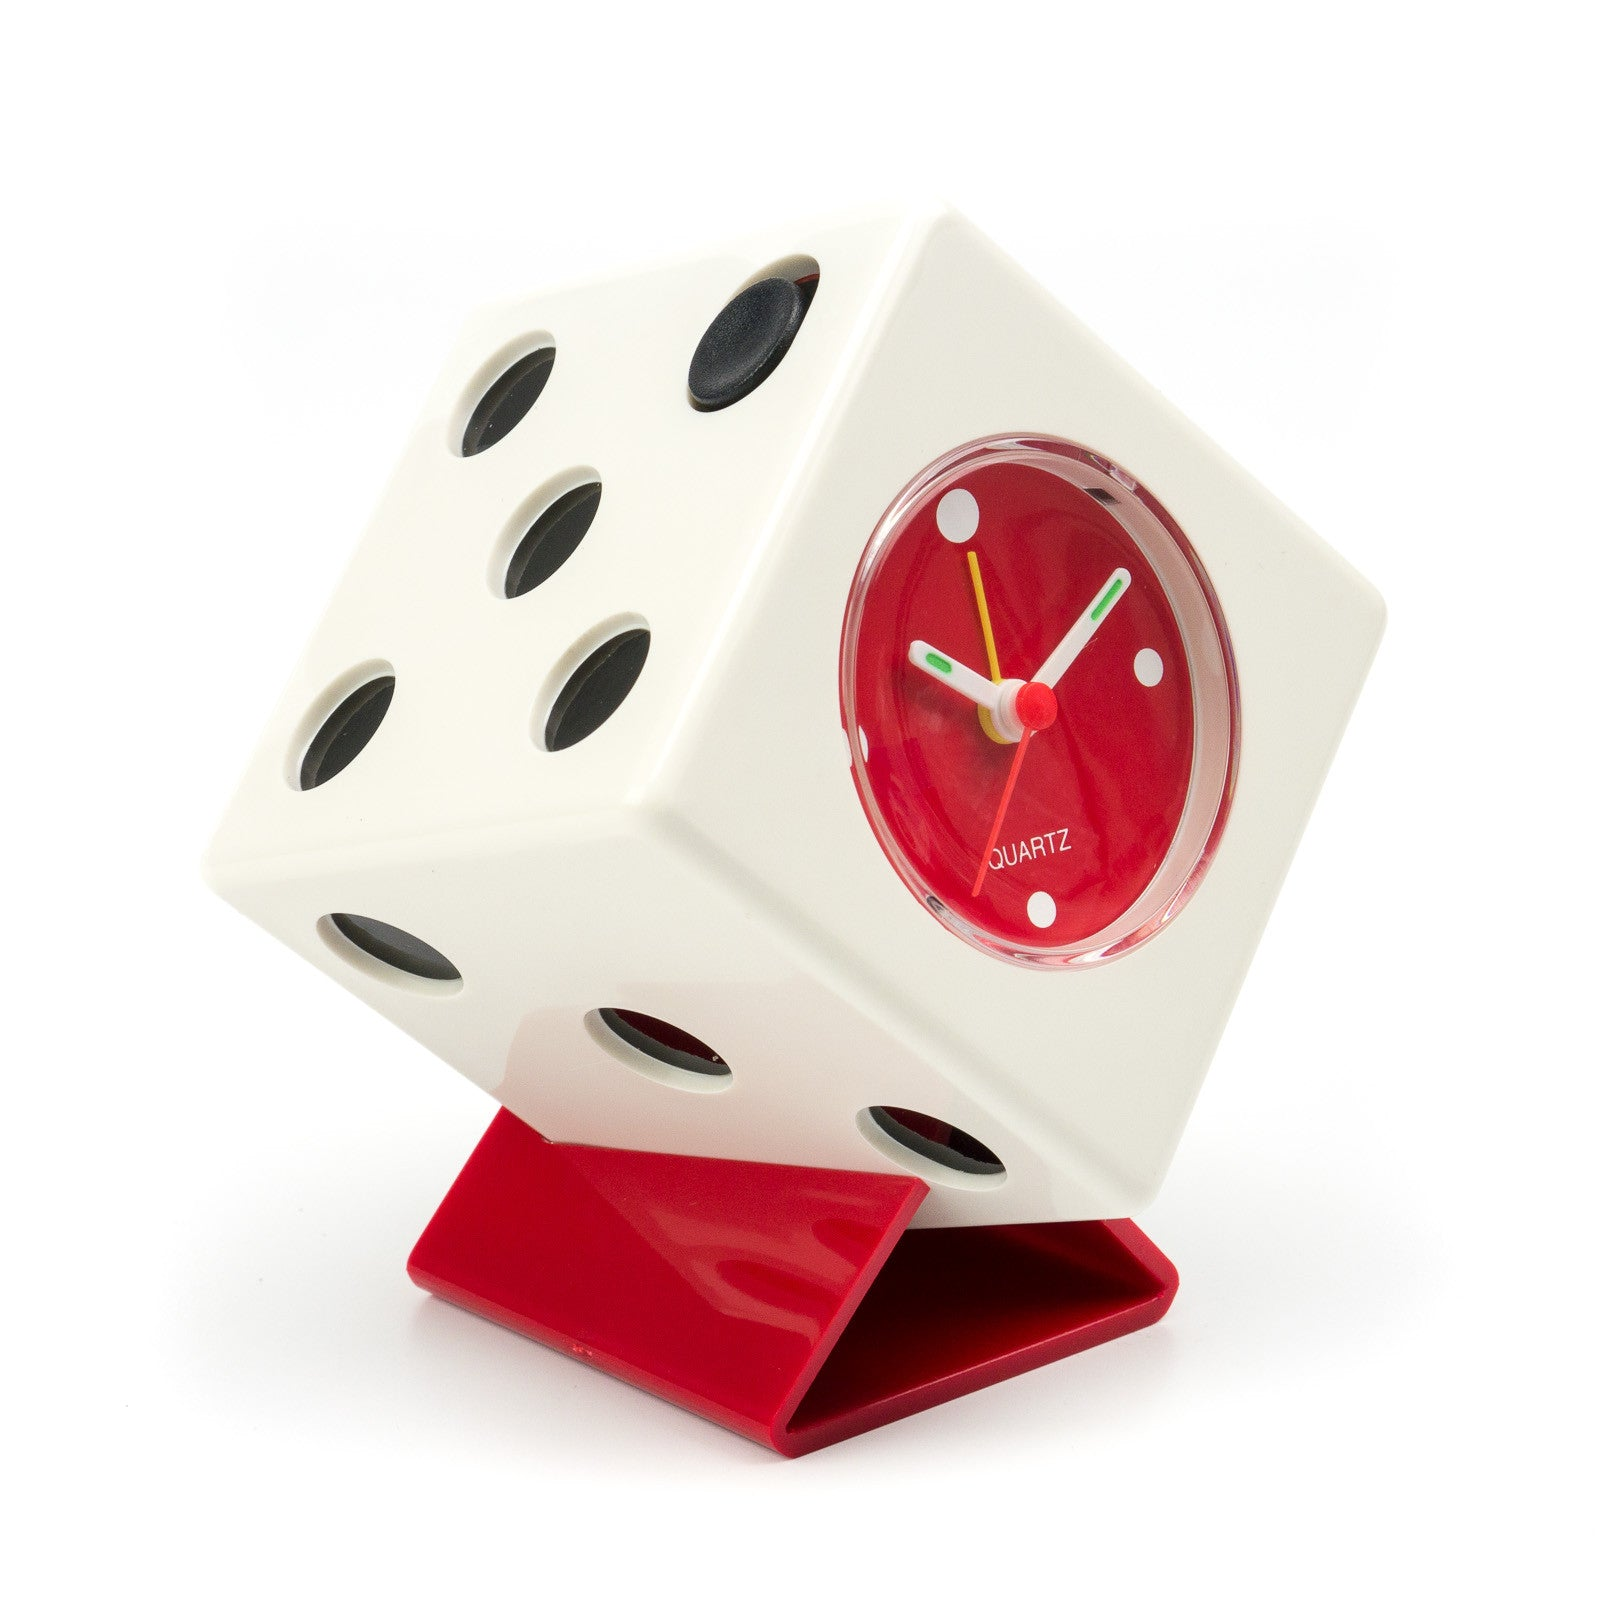 dice quartz alarm clock casino supply 1 - Casino Decorations